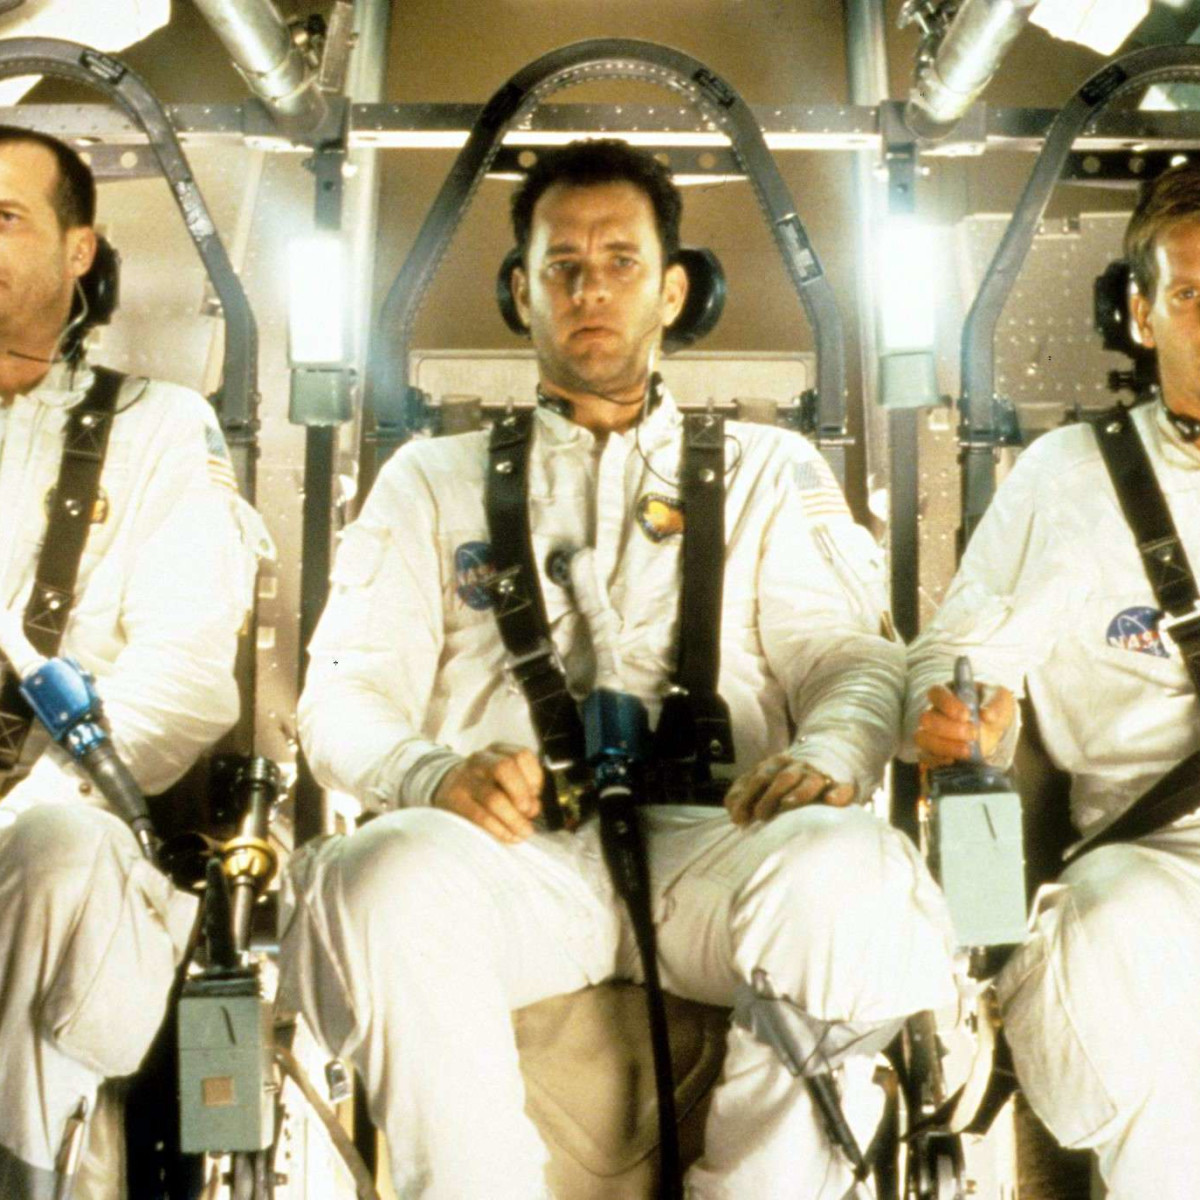 Houston, Houston Cinema Arts Fest 2015, October 2015, Apollo 13